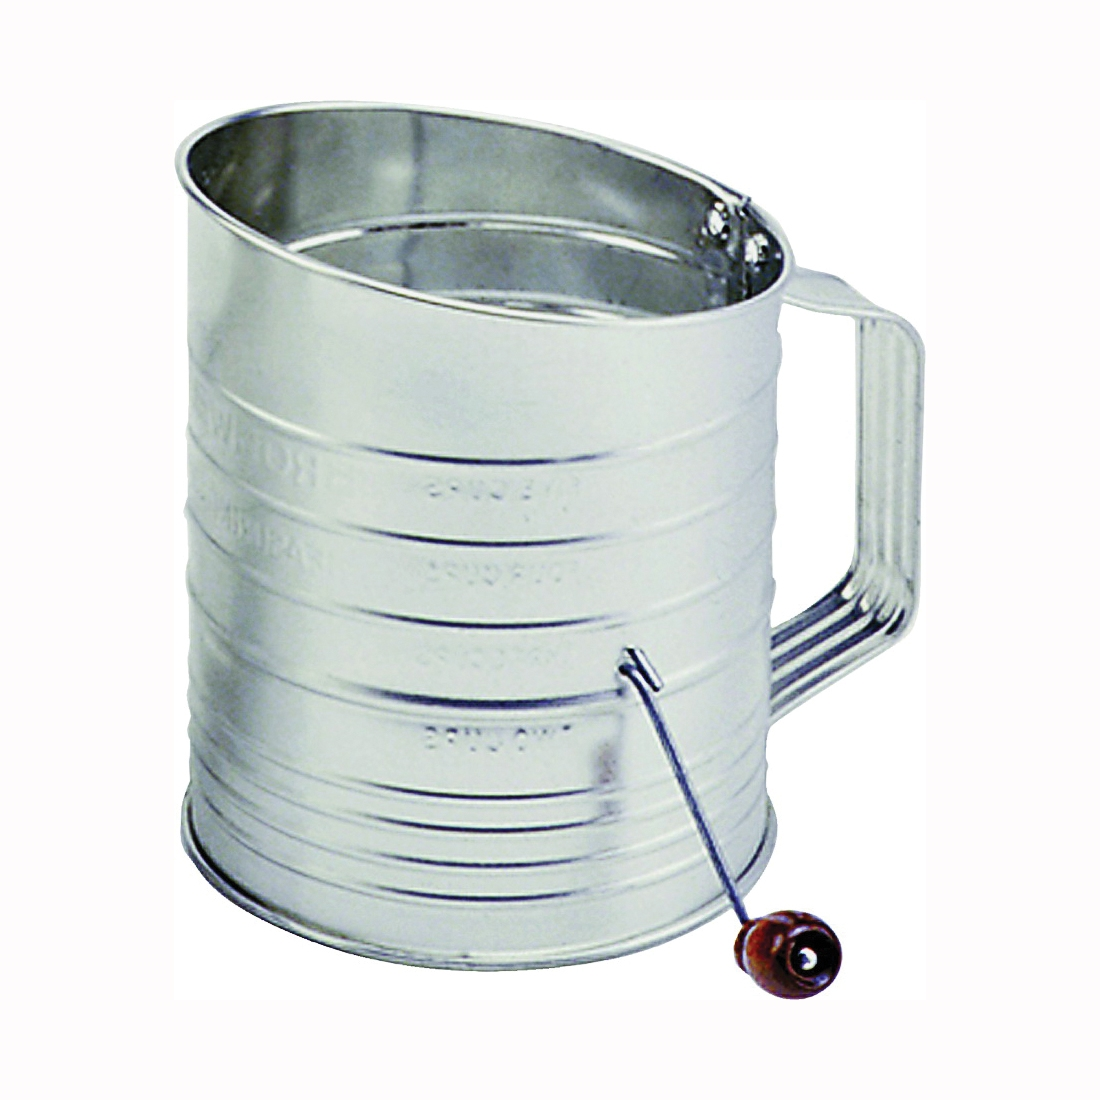 Picture of NORPRO 137 Hand Crank Sifter, 40 oz Capacity, 5 in H, Stainless Steel